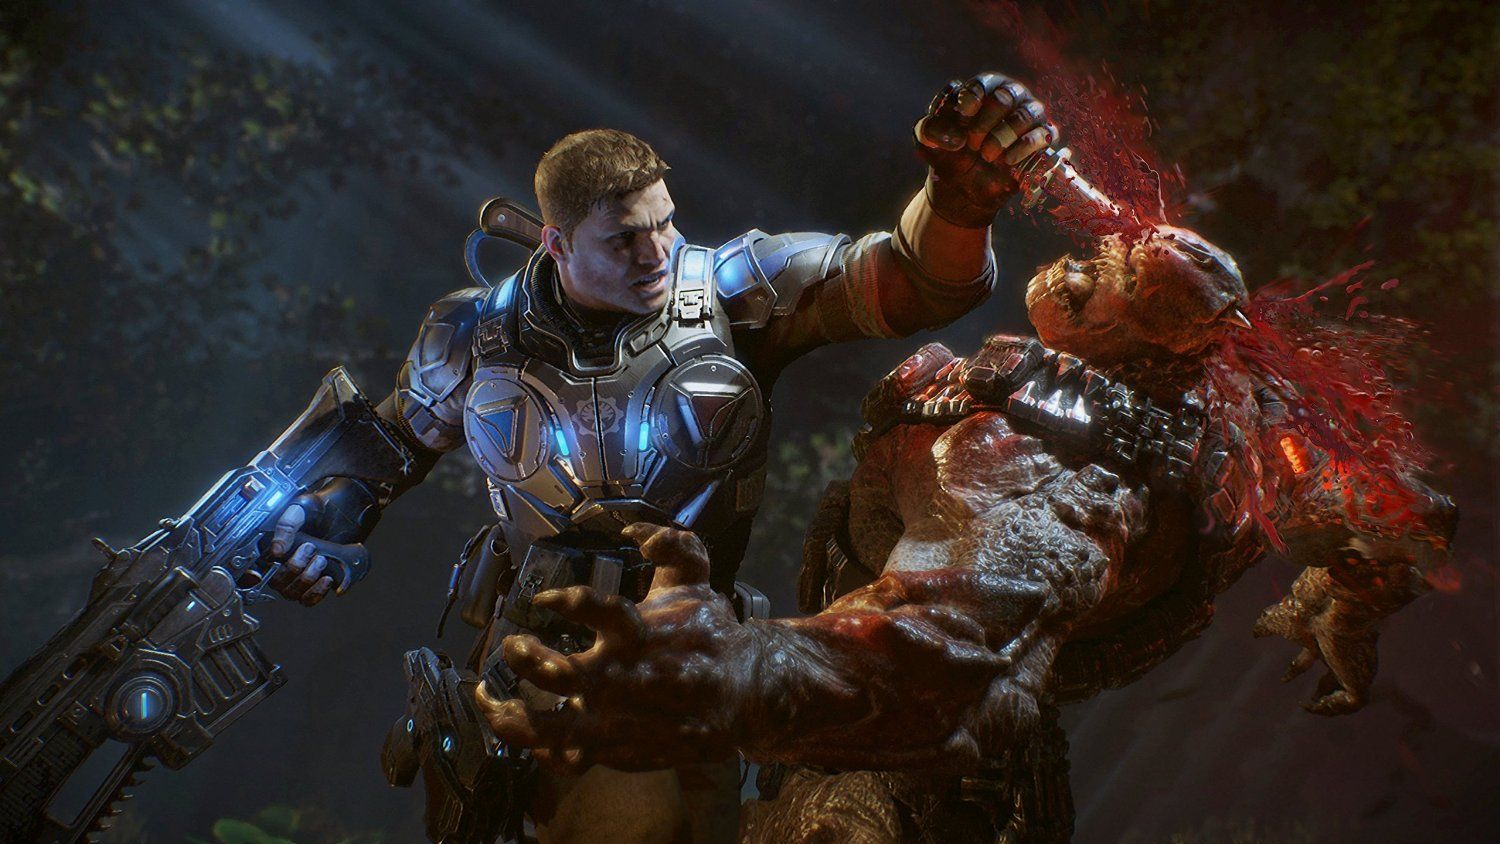 Gears of War 4 (Xbox One) - 9